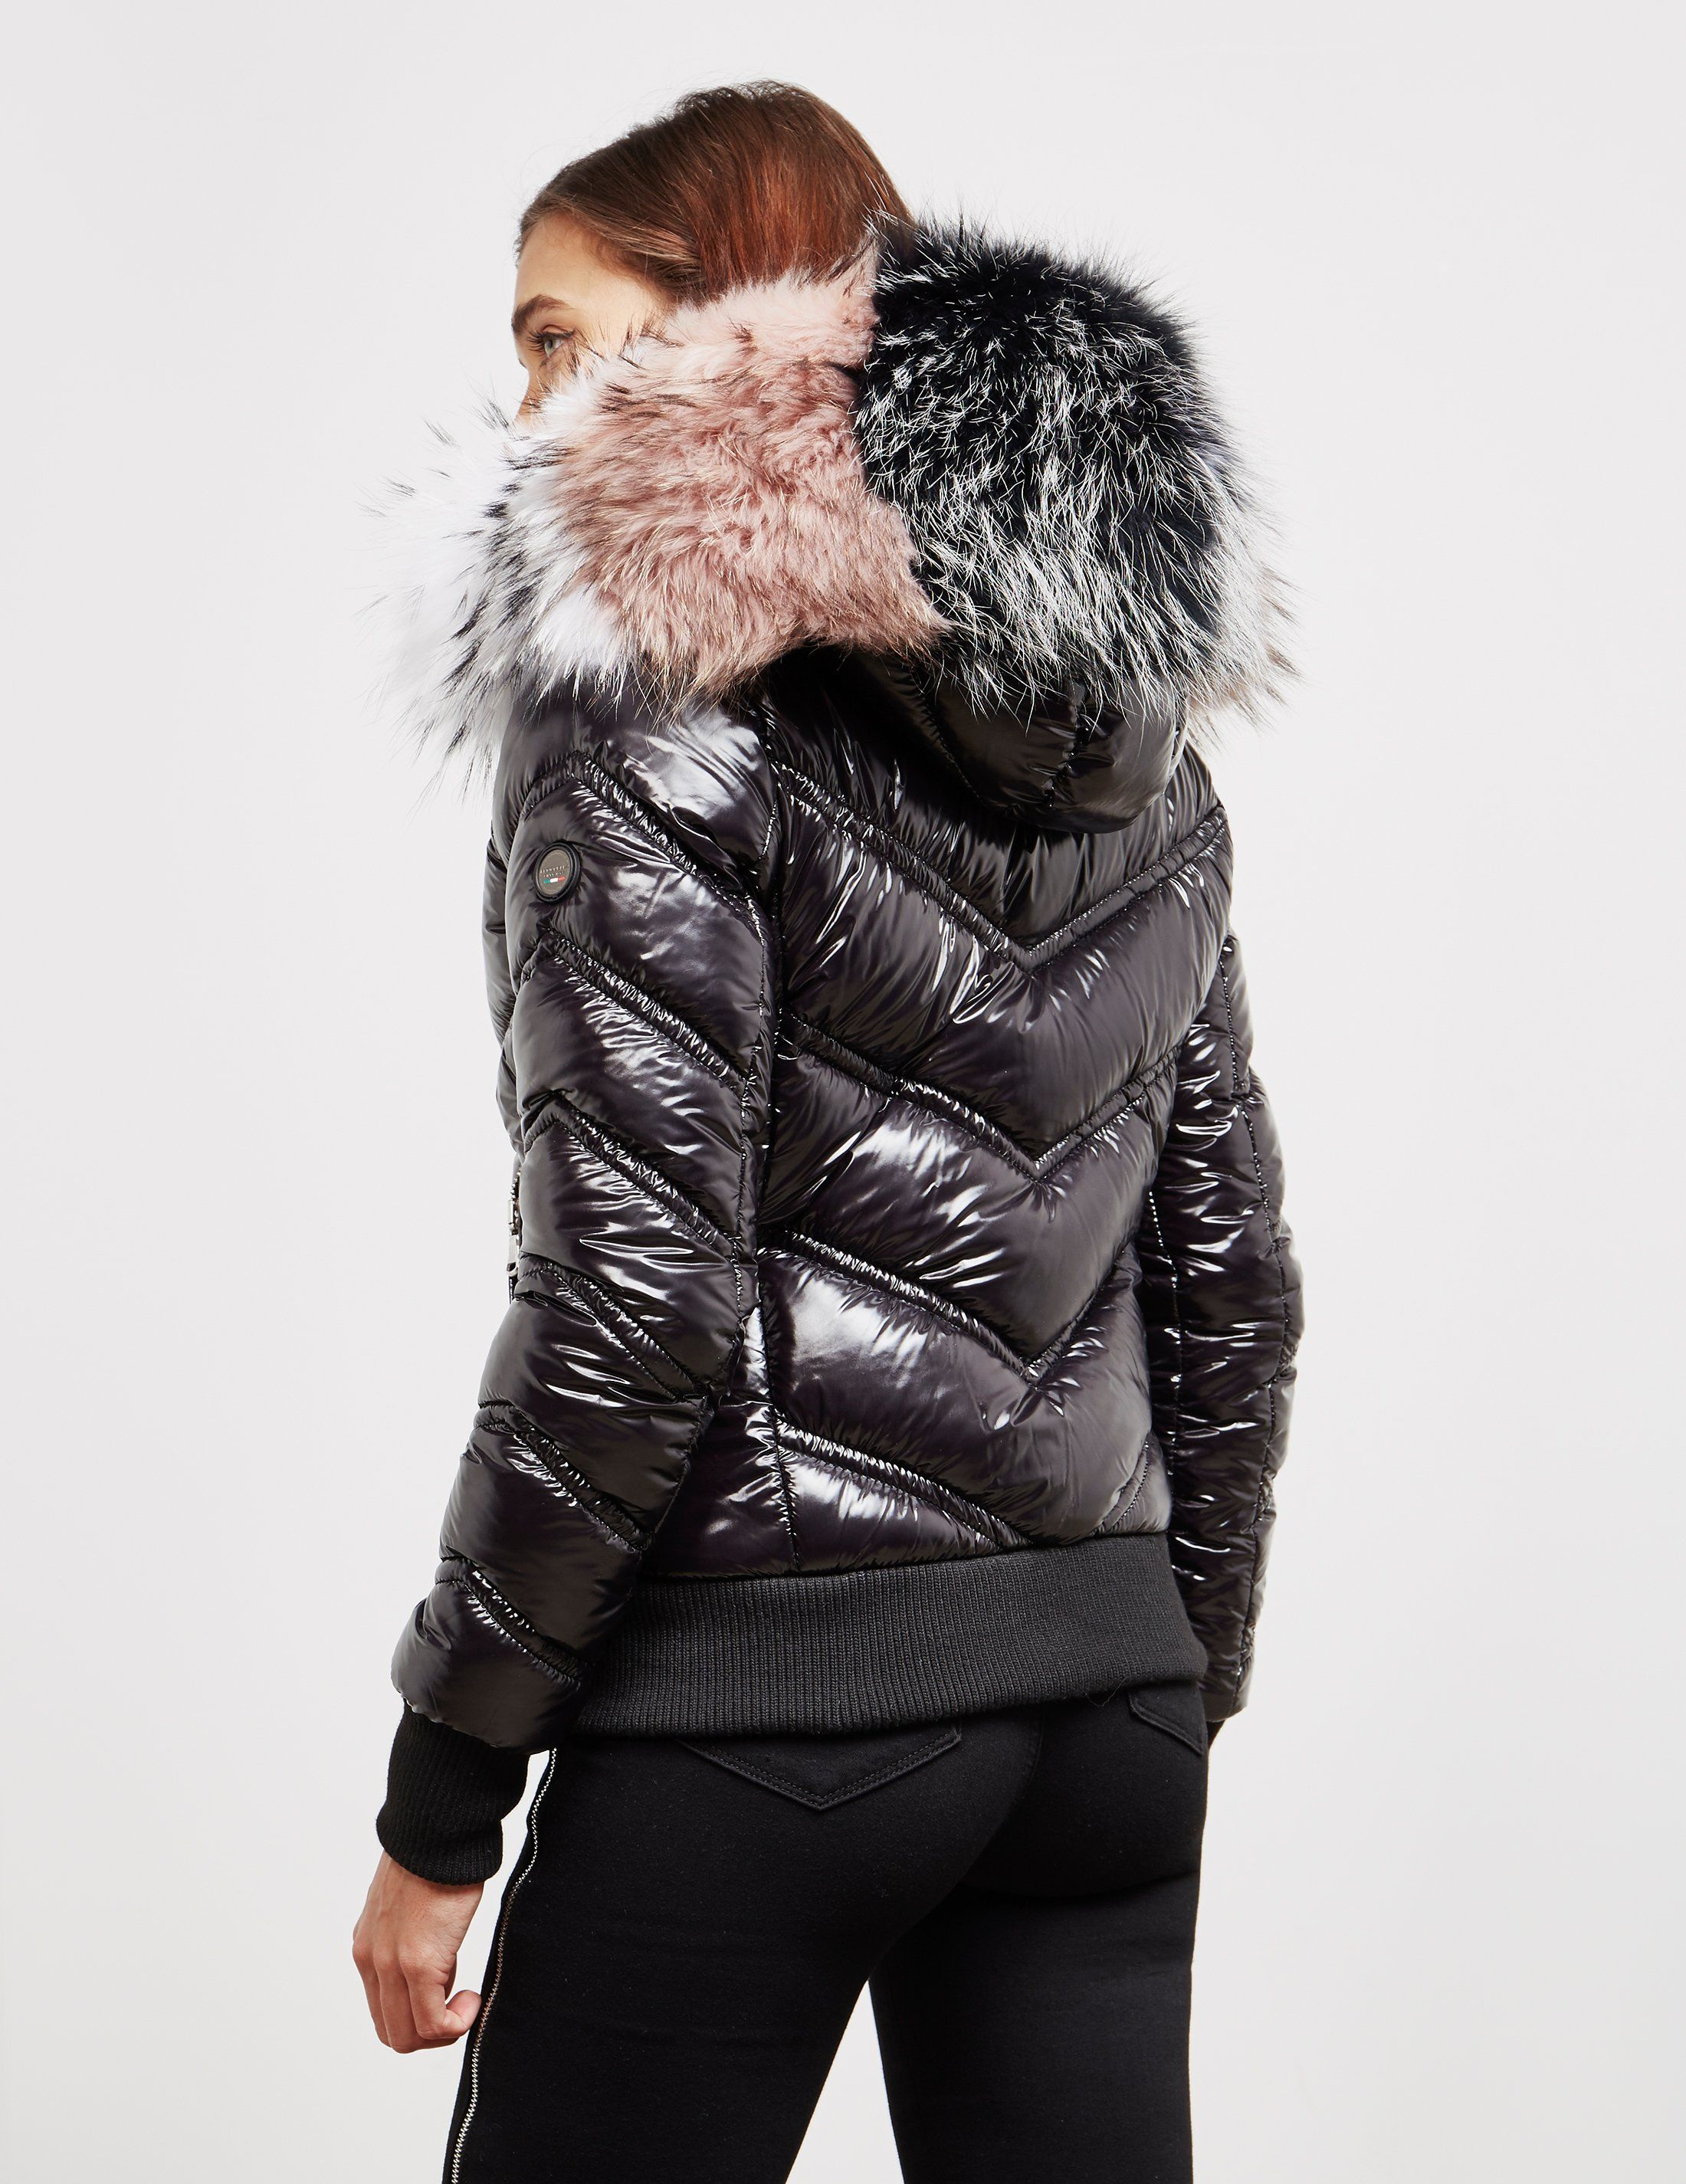 Froccella Multi Fur Bomber Jacket